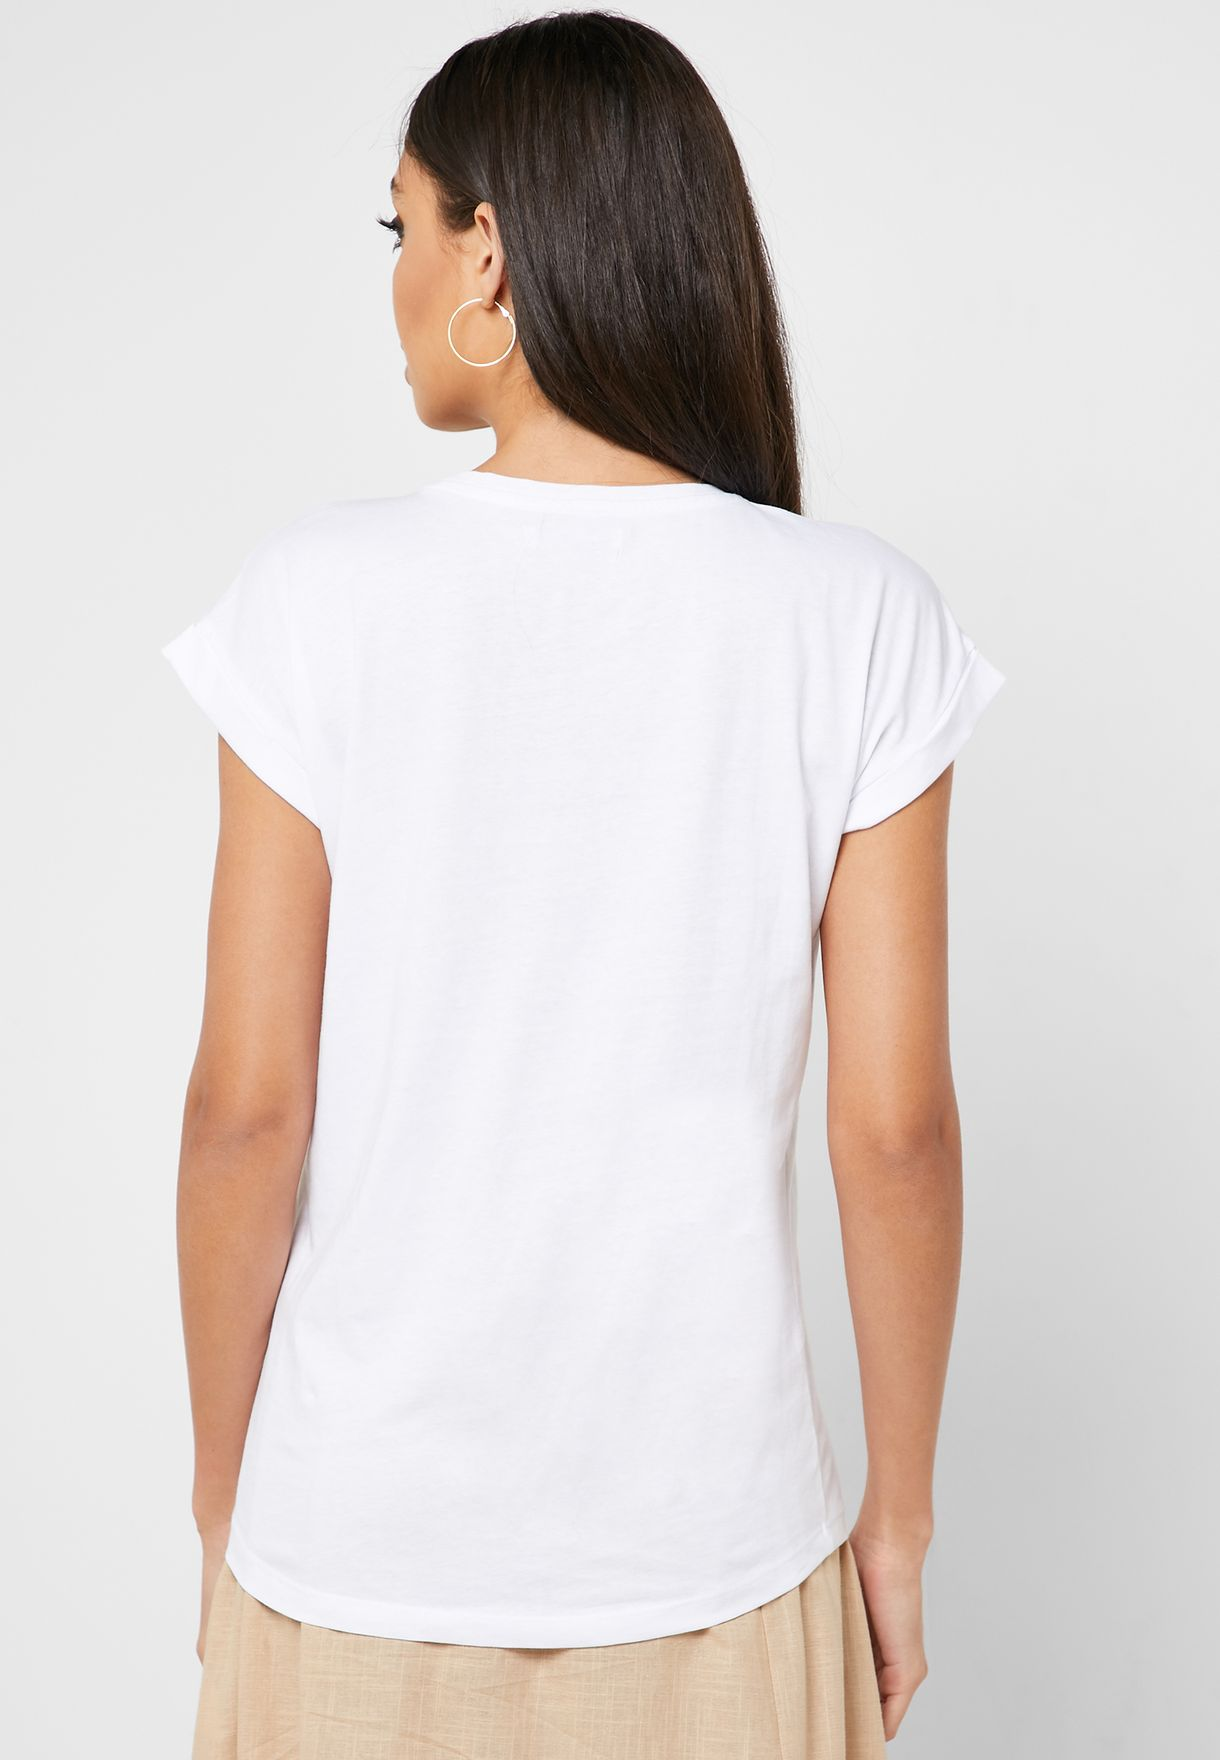 Cap Sleeve Graphic T-Shirt